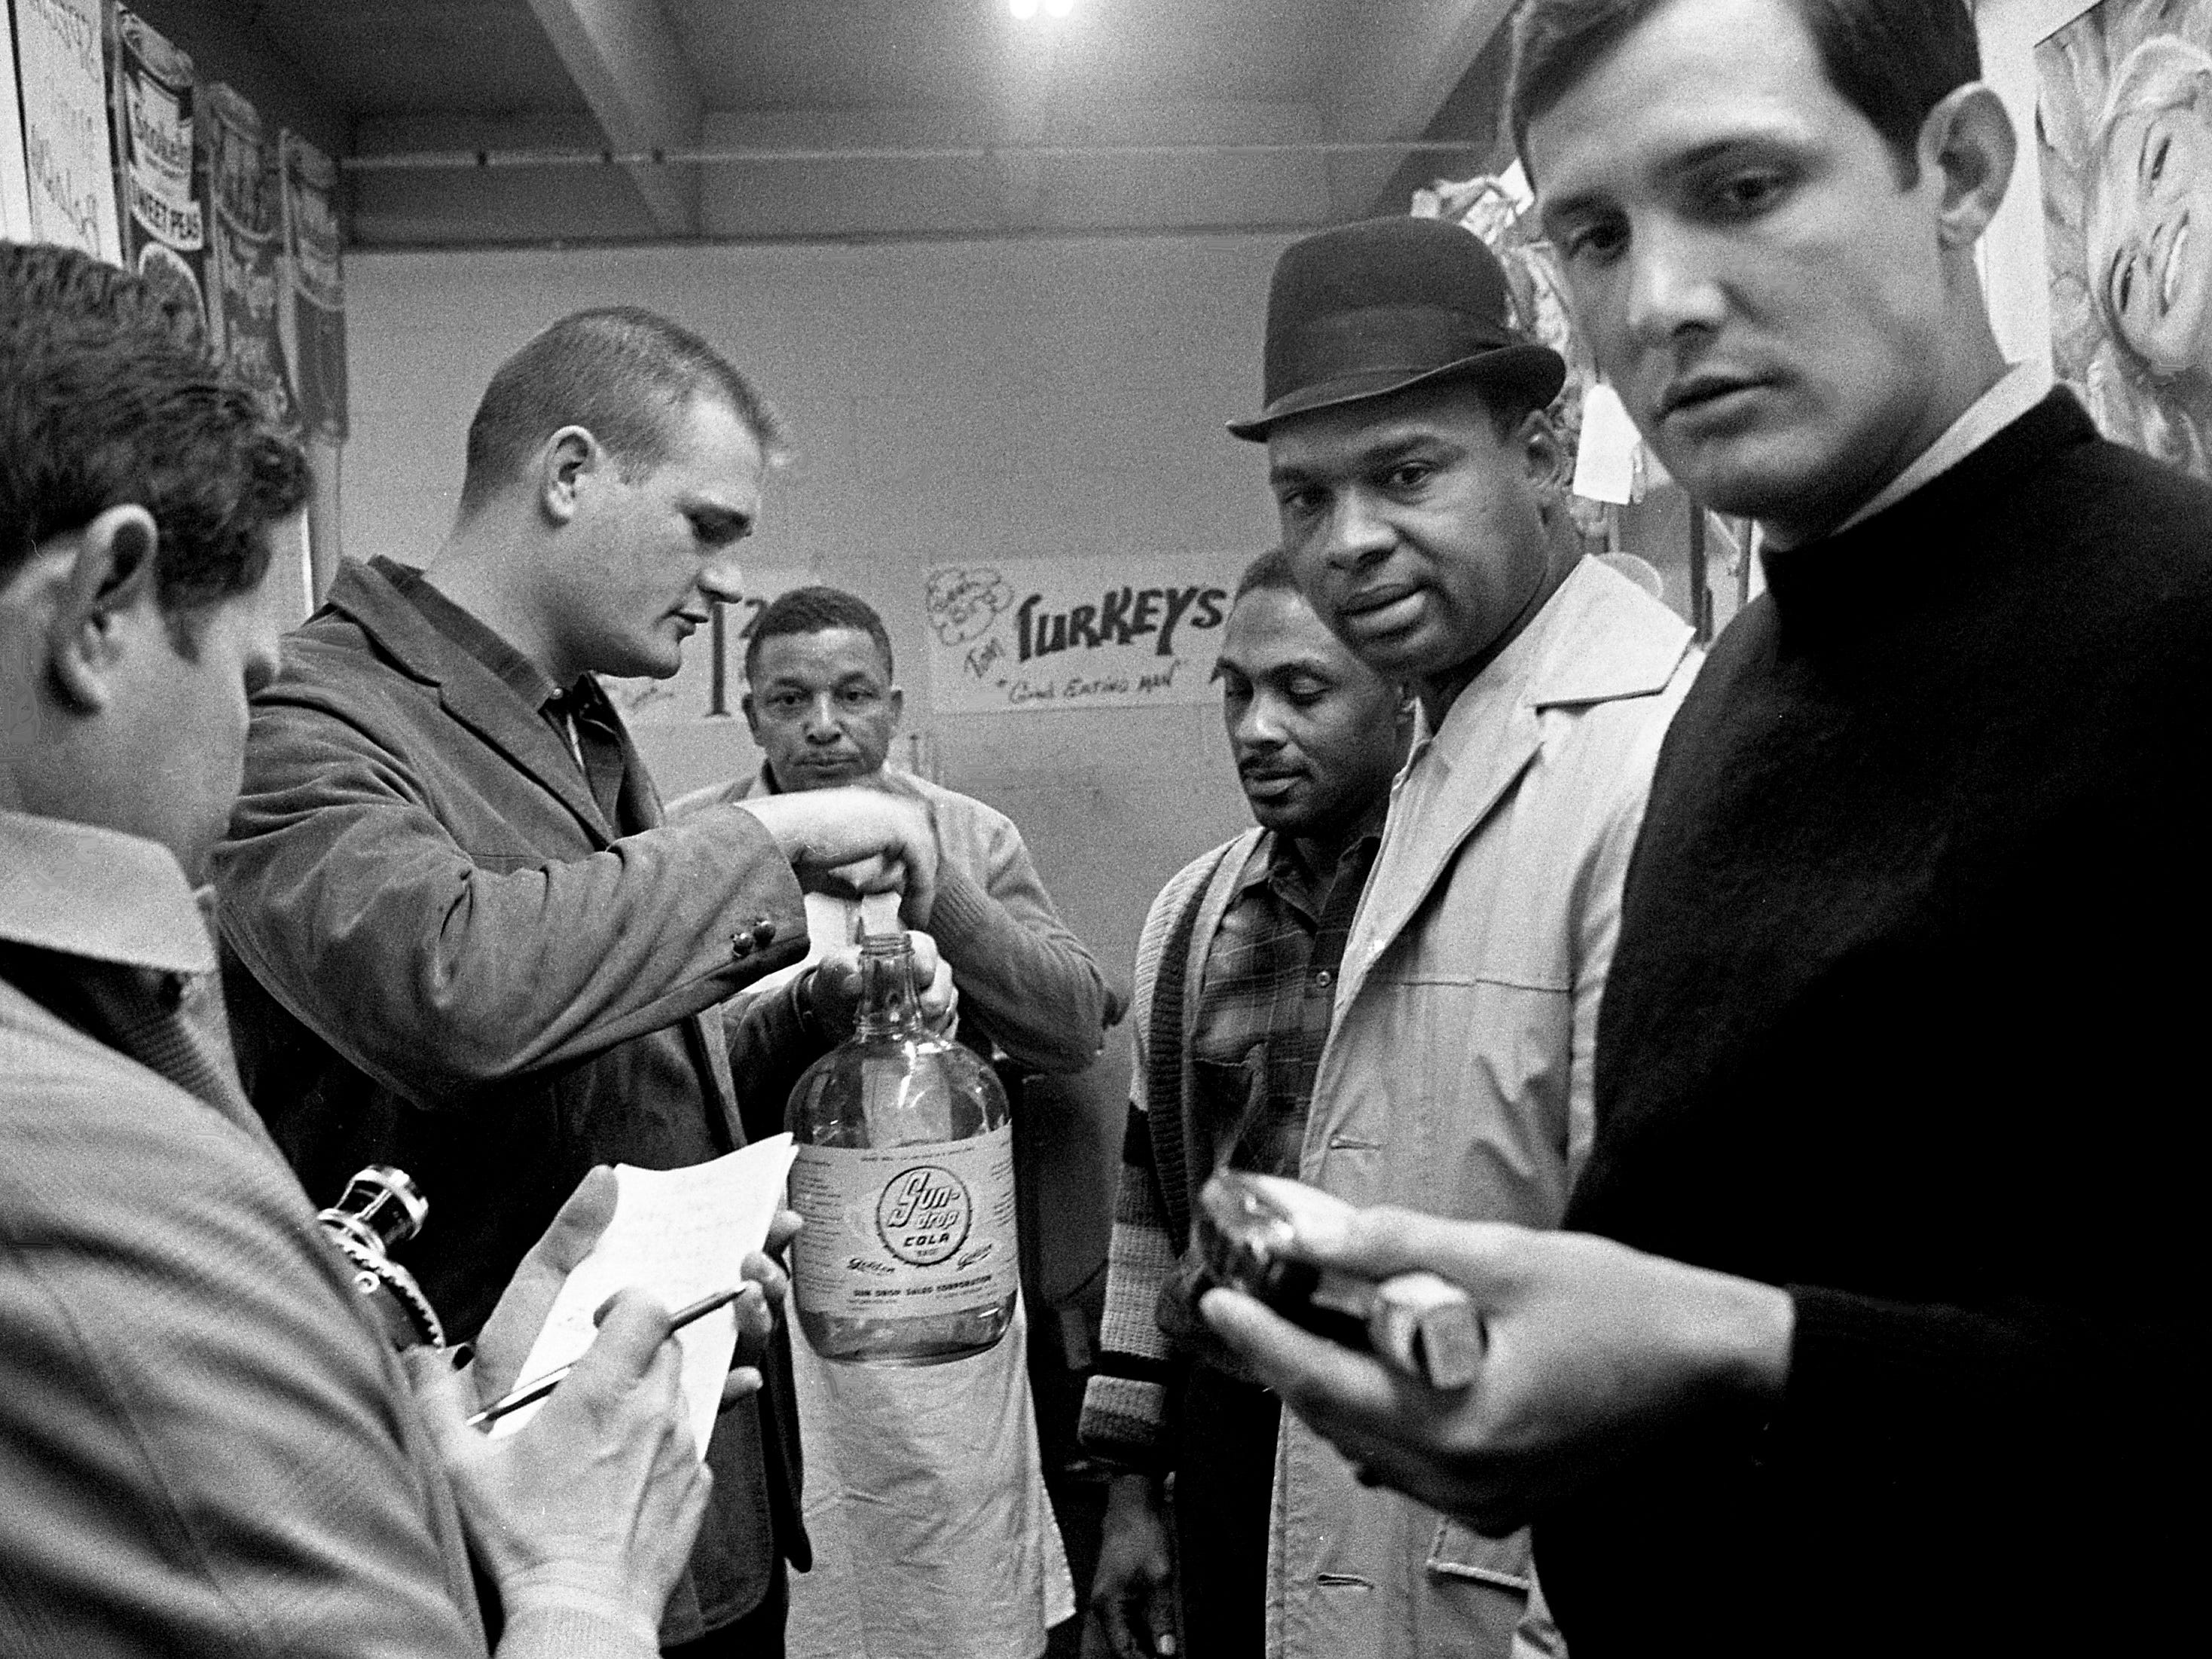 Metro Patrol Sgt. Joe Herrud, second from left, examines a gallon of moonshine whiskey confiscated in a raid at Heiman Street Bi-Rite Market on Jan. 28, 1969. Porter Maple, second from left, 48, and James E. Brook, 43, operator of the store, were charged with possession of untaxed whiskey after Herrud and Patrolmen Luther Summers and Carl Dollarhide, right, found 22 gallons of the moonshine behind the meat counter in a locked safe.